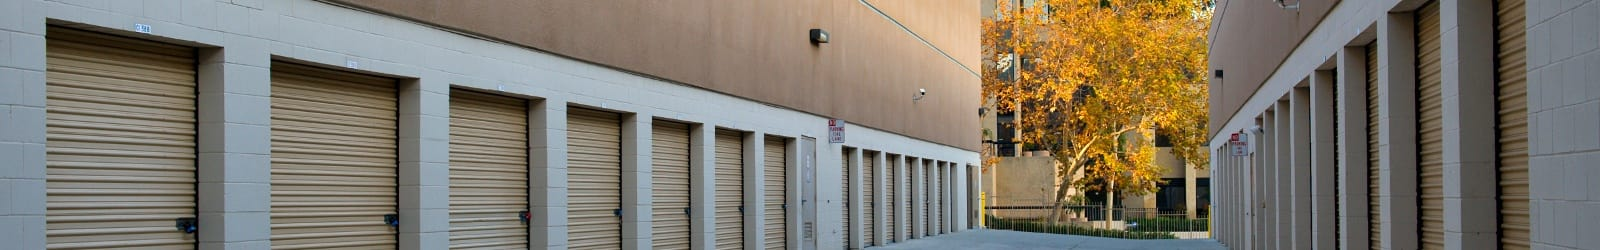 Sorrento Valley Self Storage Customer's Reviews